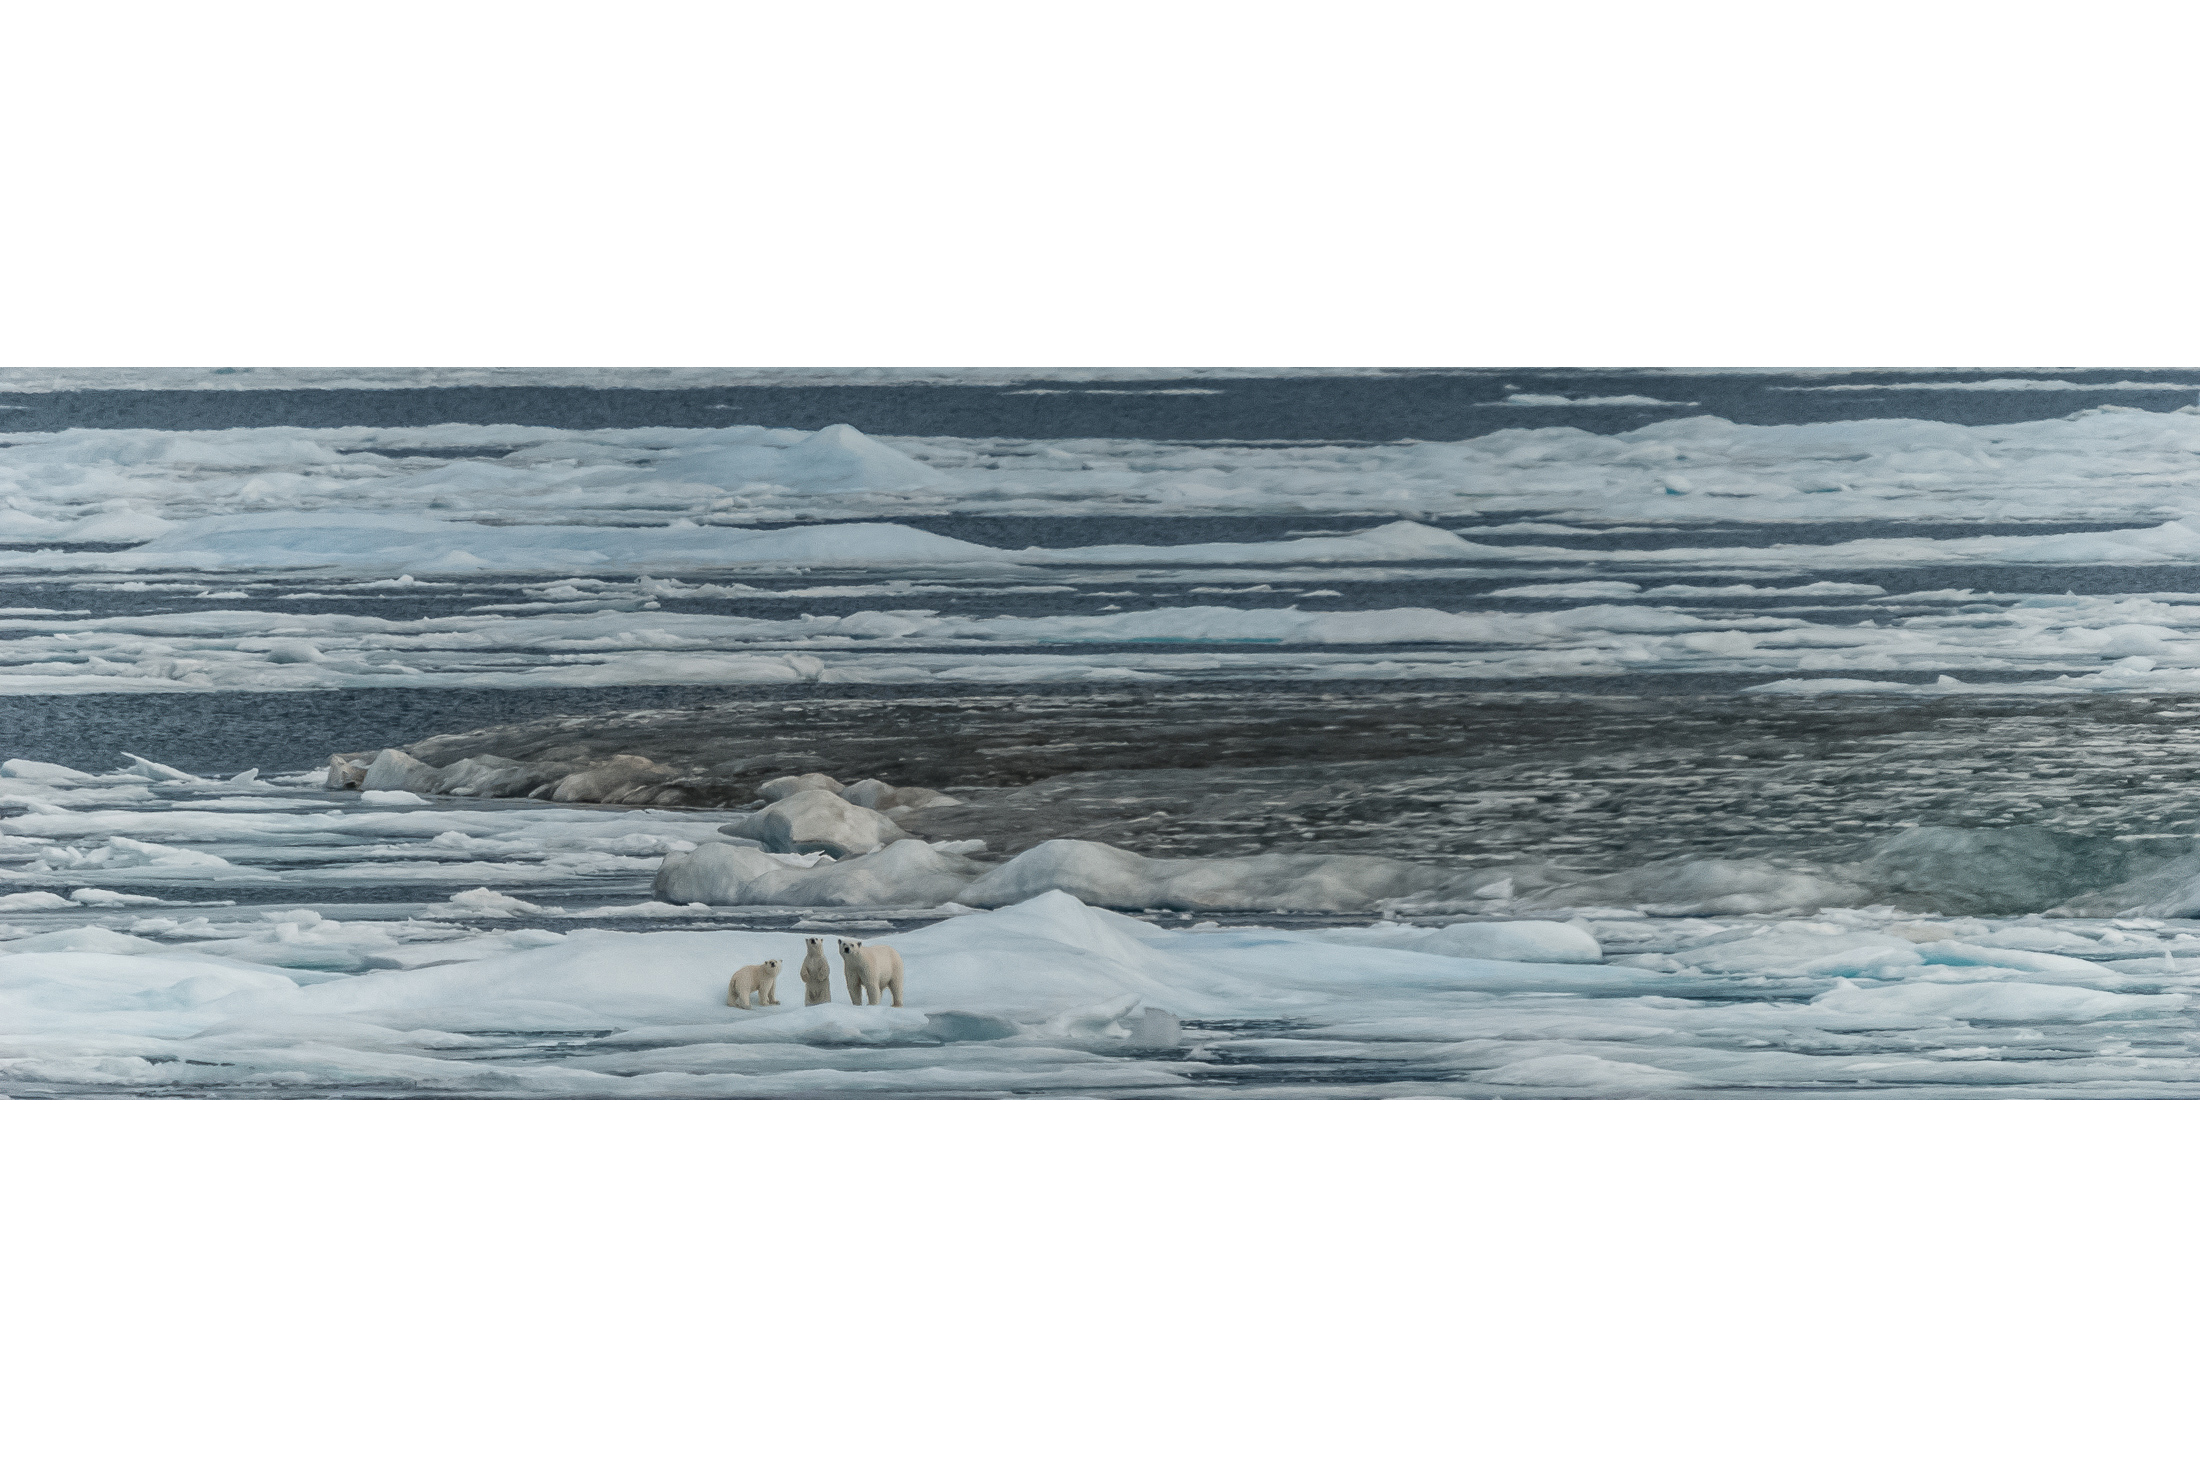 Polar Bear Mother and Cubs on the Melting Ice